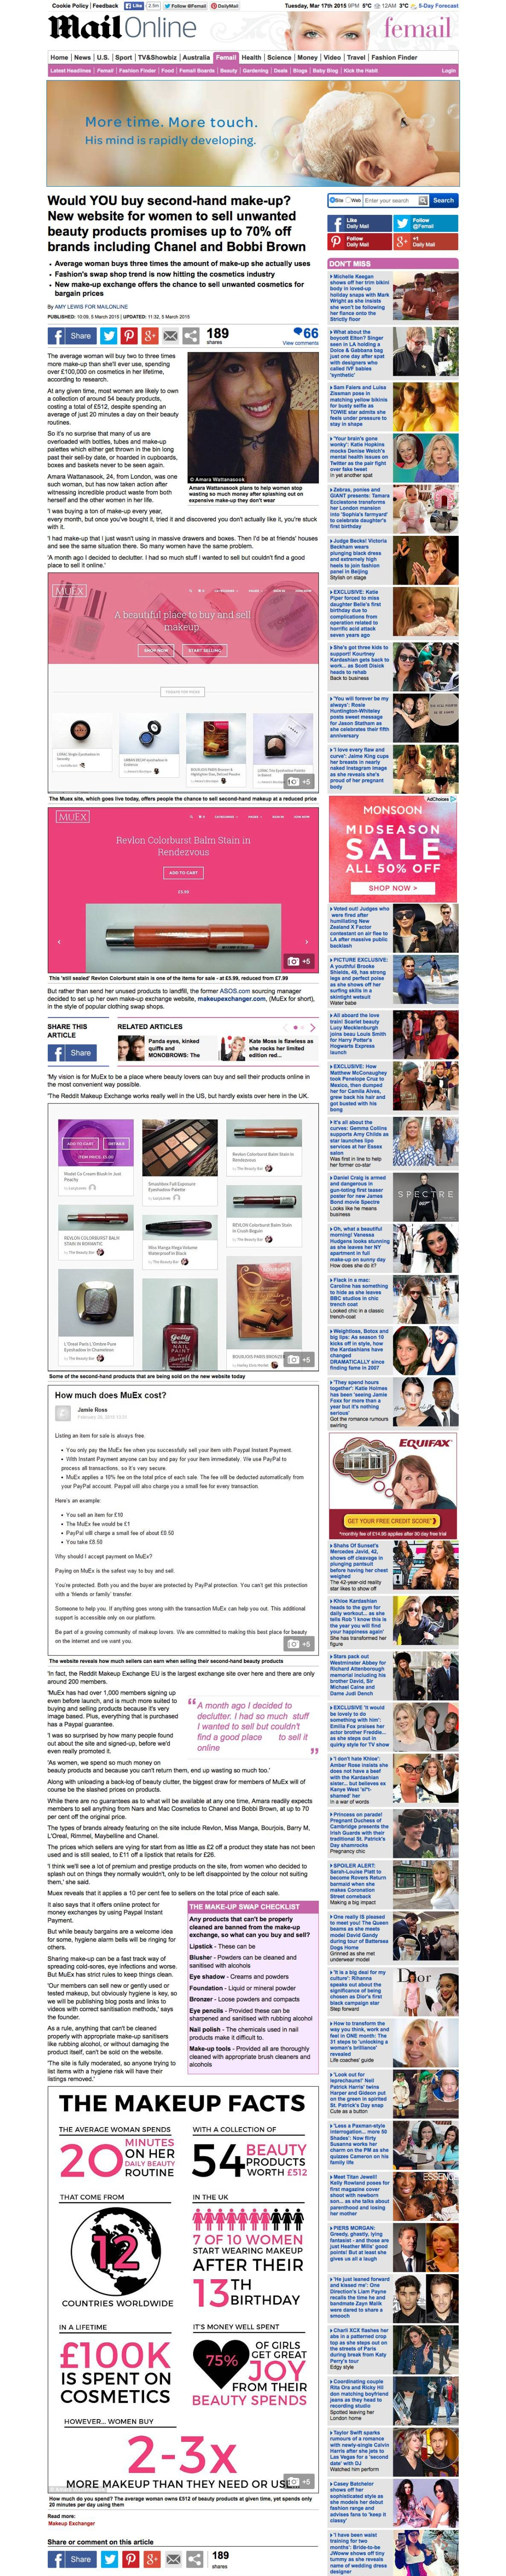 MuEx_lets_you_sell_unwanted_beauty_products_Daily_Mail_Online_-_2015-03-17_20.40.10.png